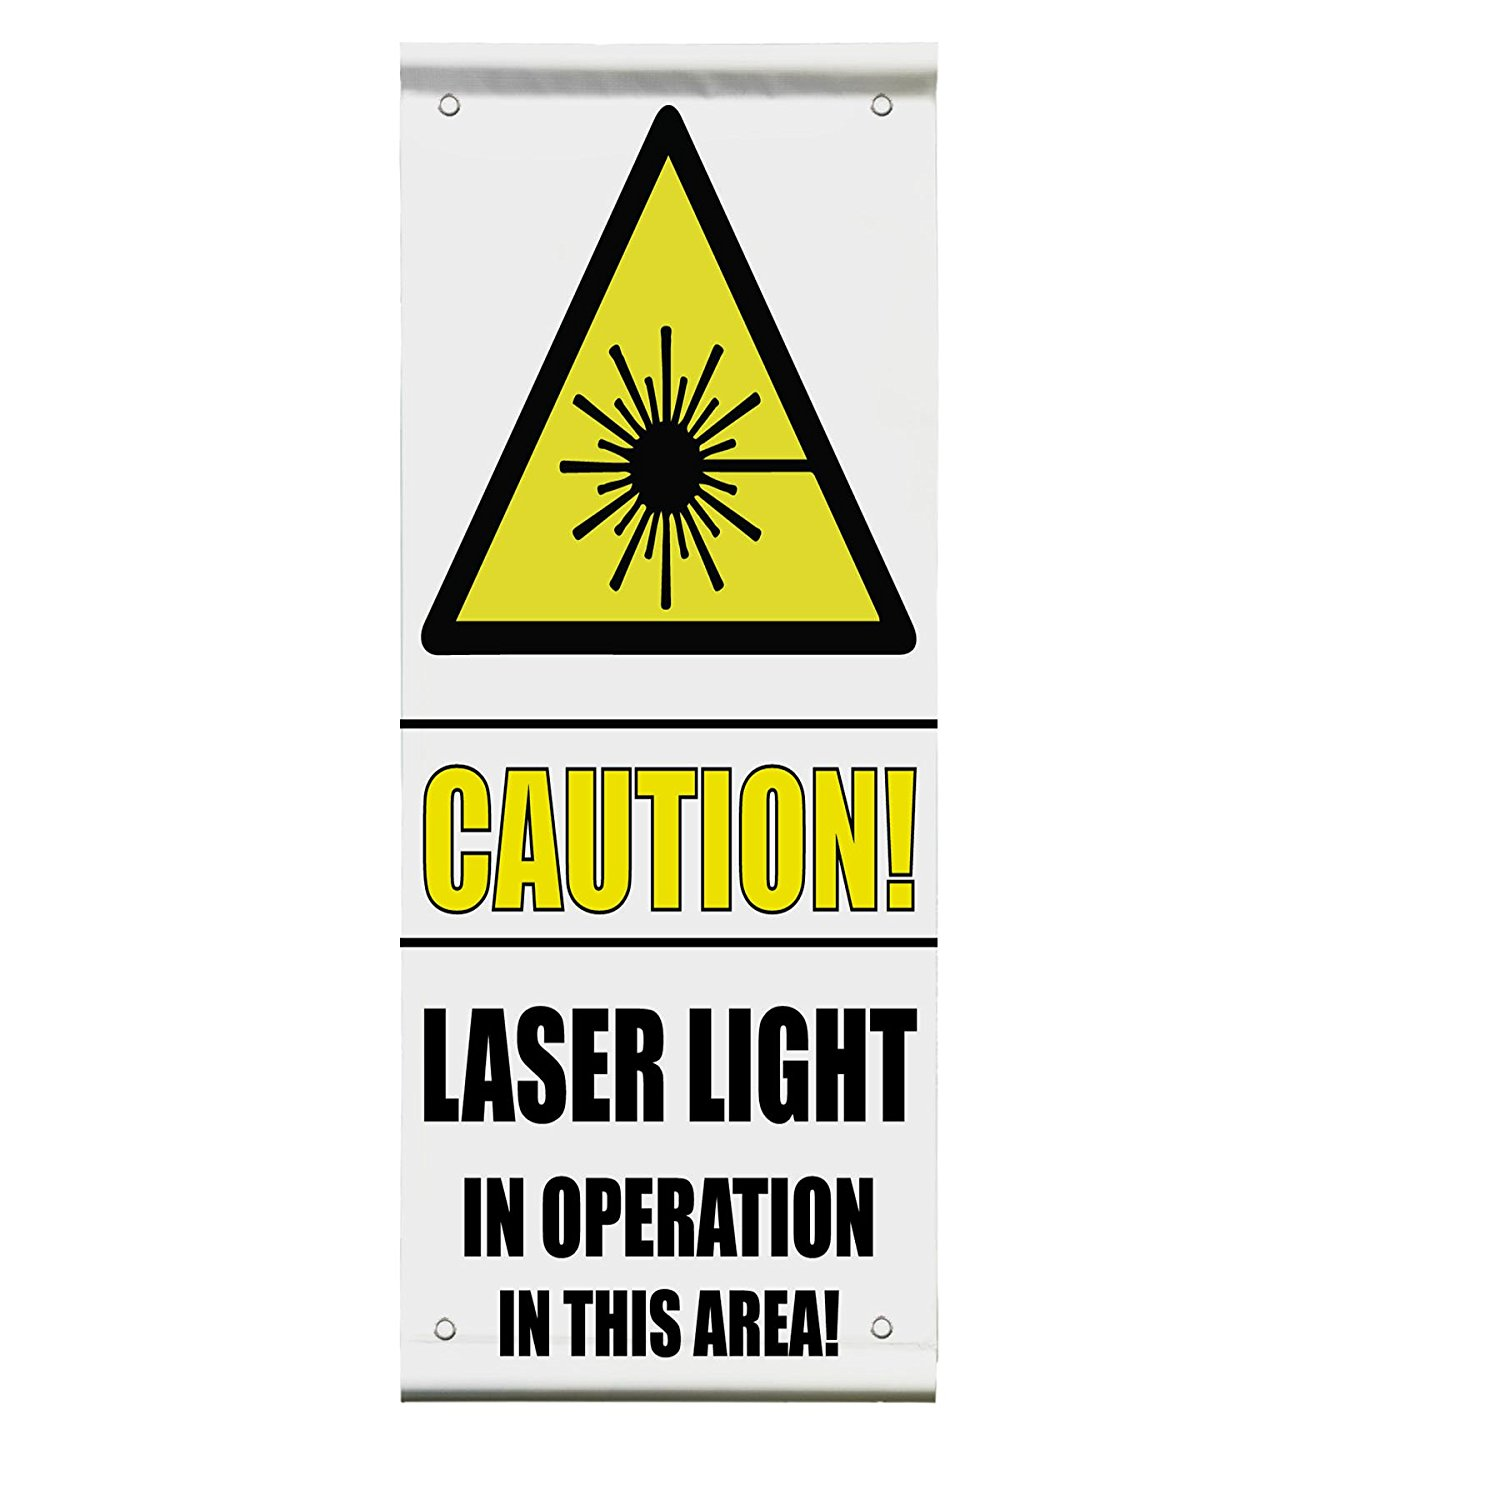 Caution! Laser Light In Operation Safety Double Sided Vertical Pole Banner Sign 36 in x 72 in w/ Wall Bracket